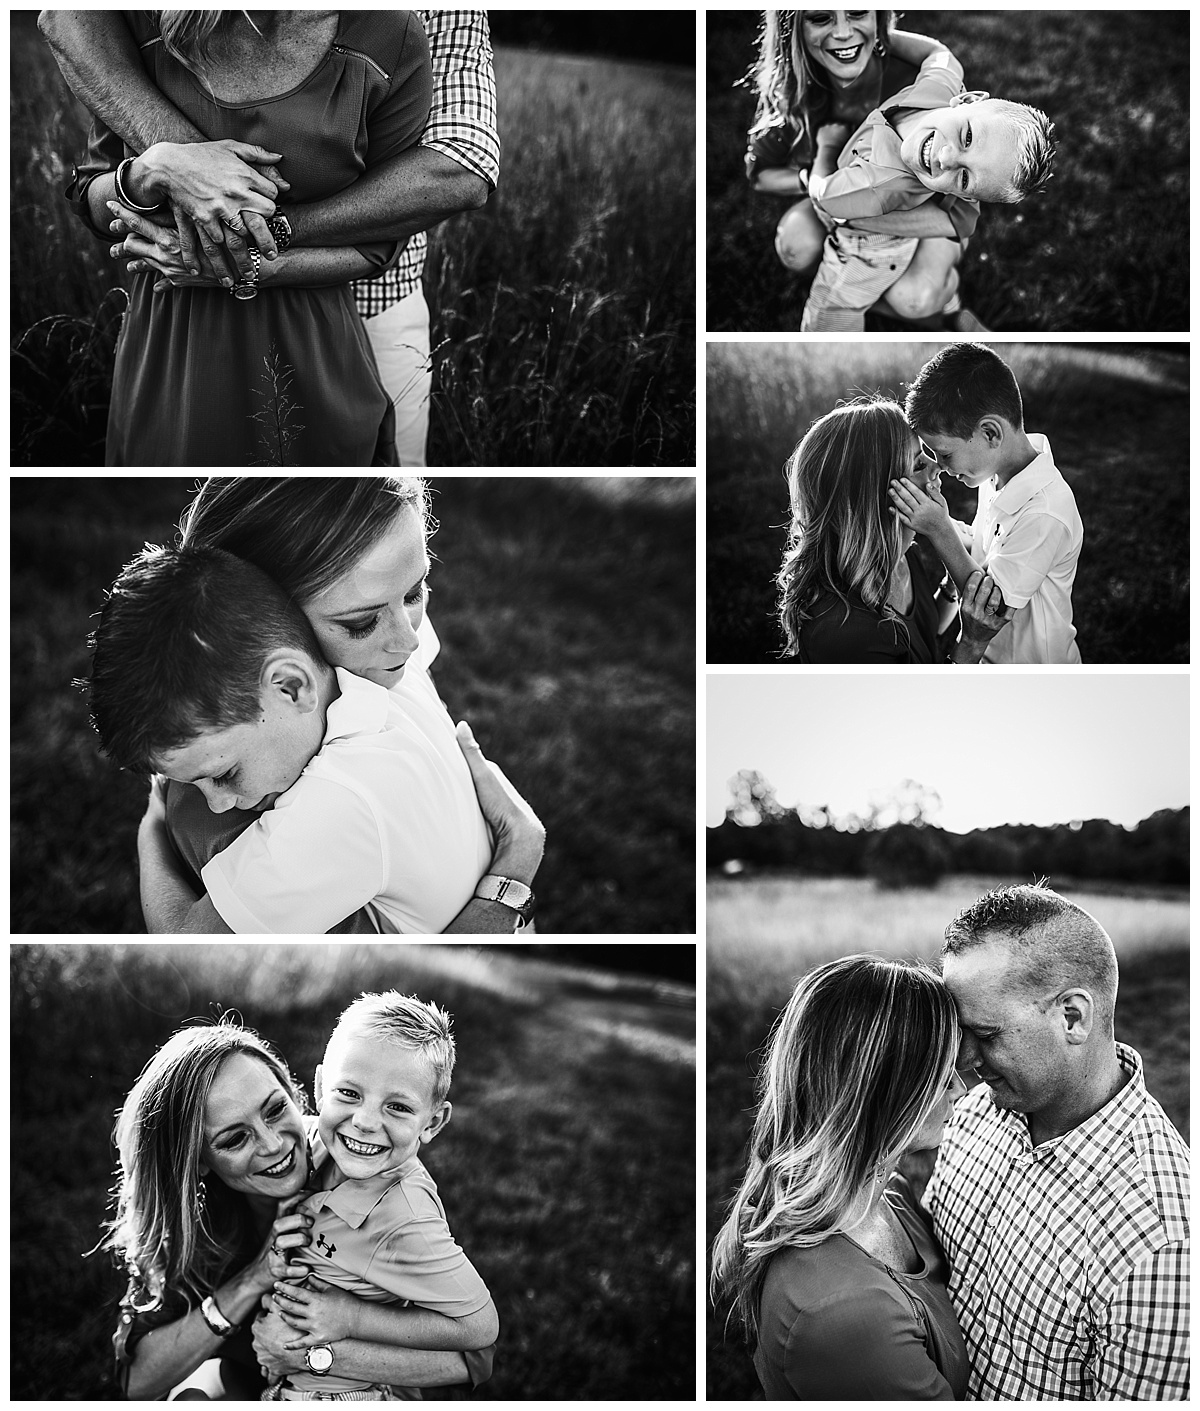 Black and white images of a mom with her two young sons and boyfriend during summer photo shoot in Medina, OH grassy field.